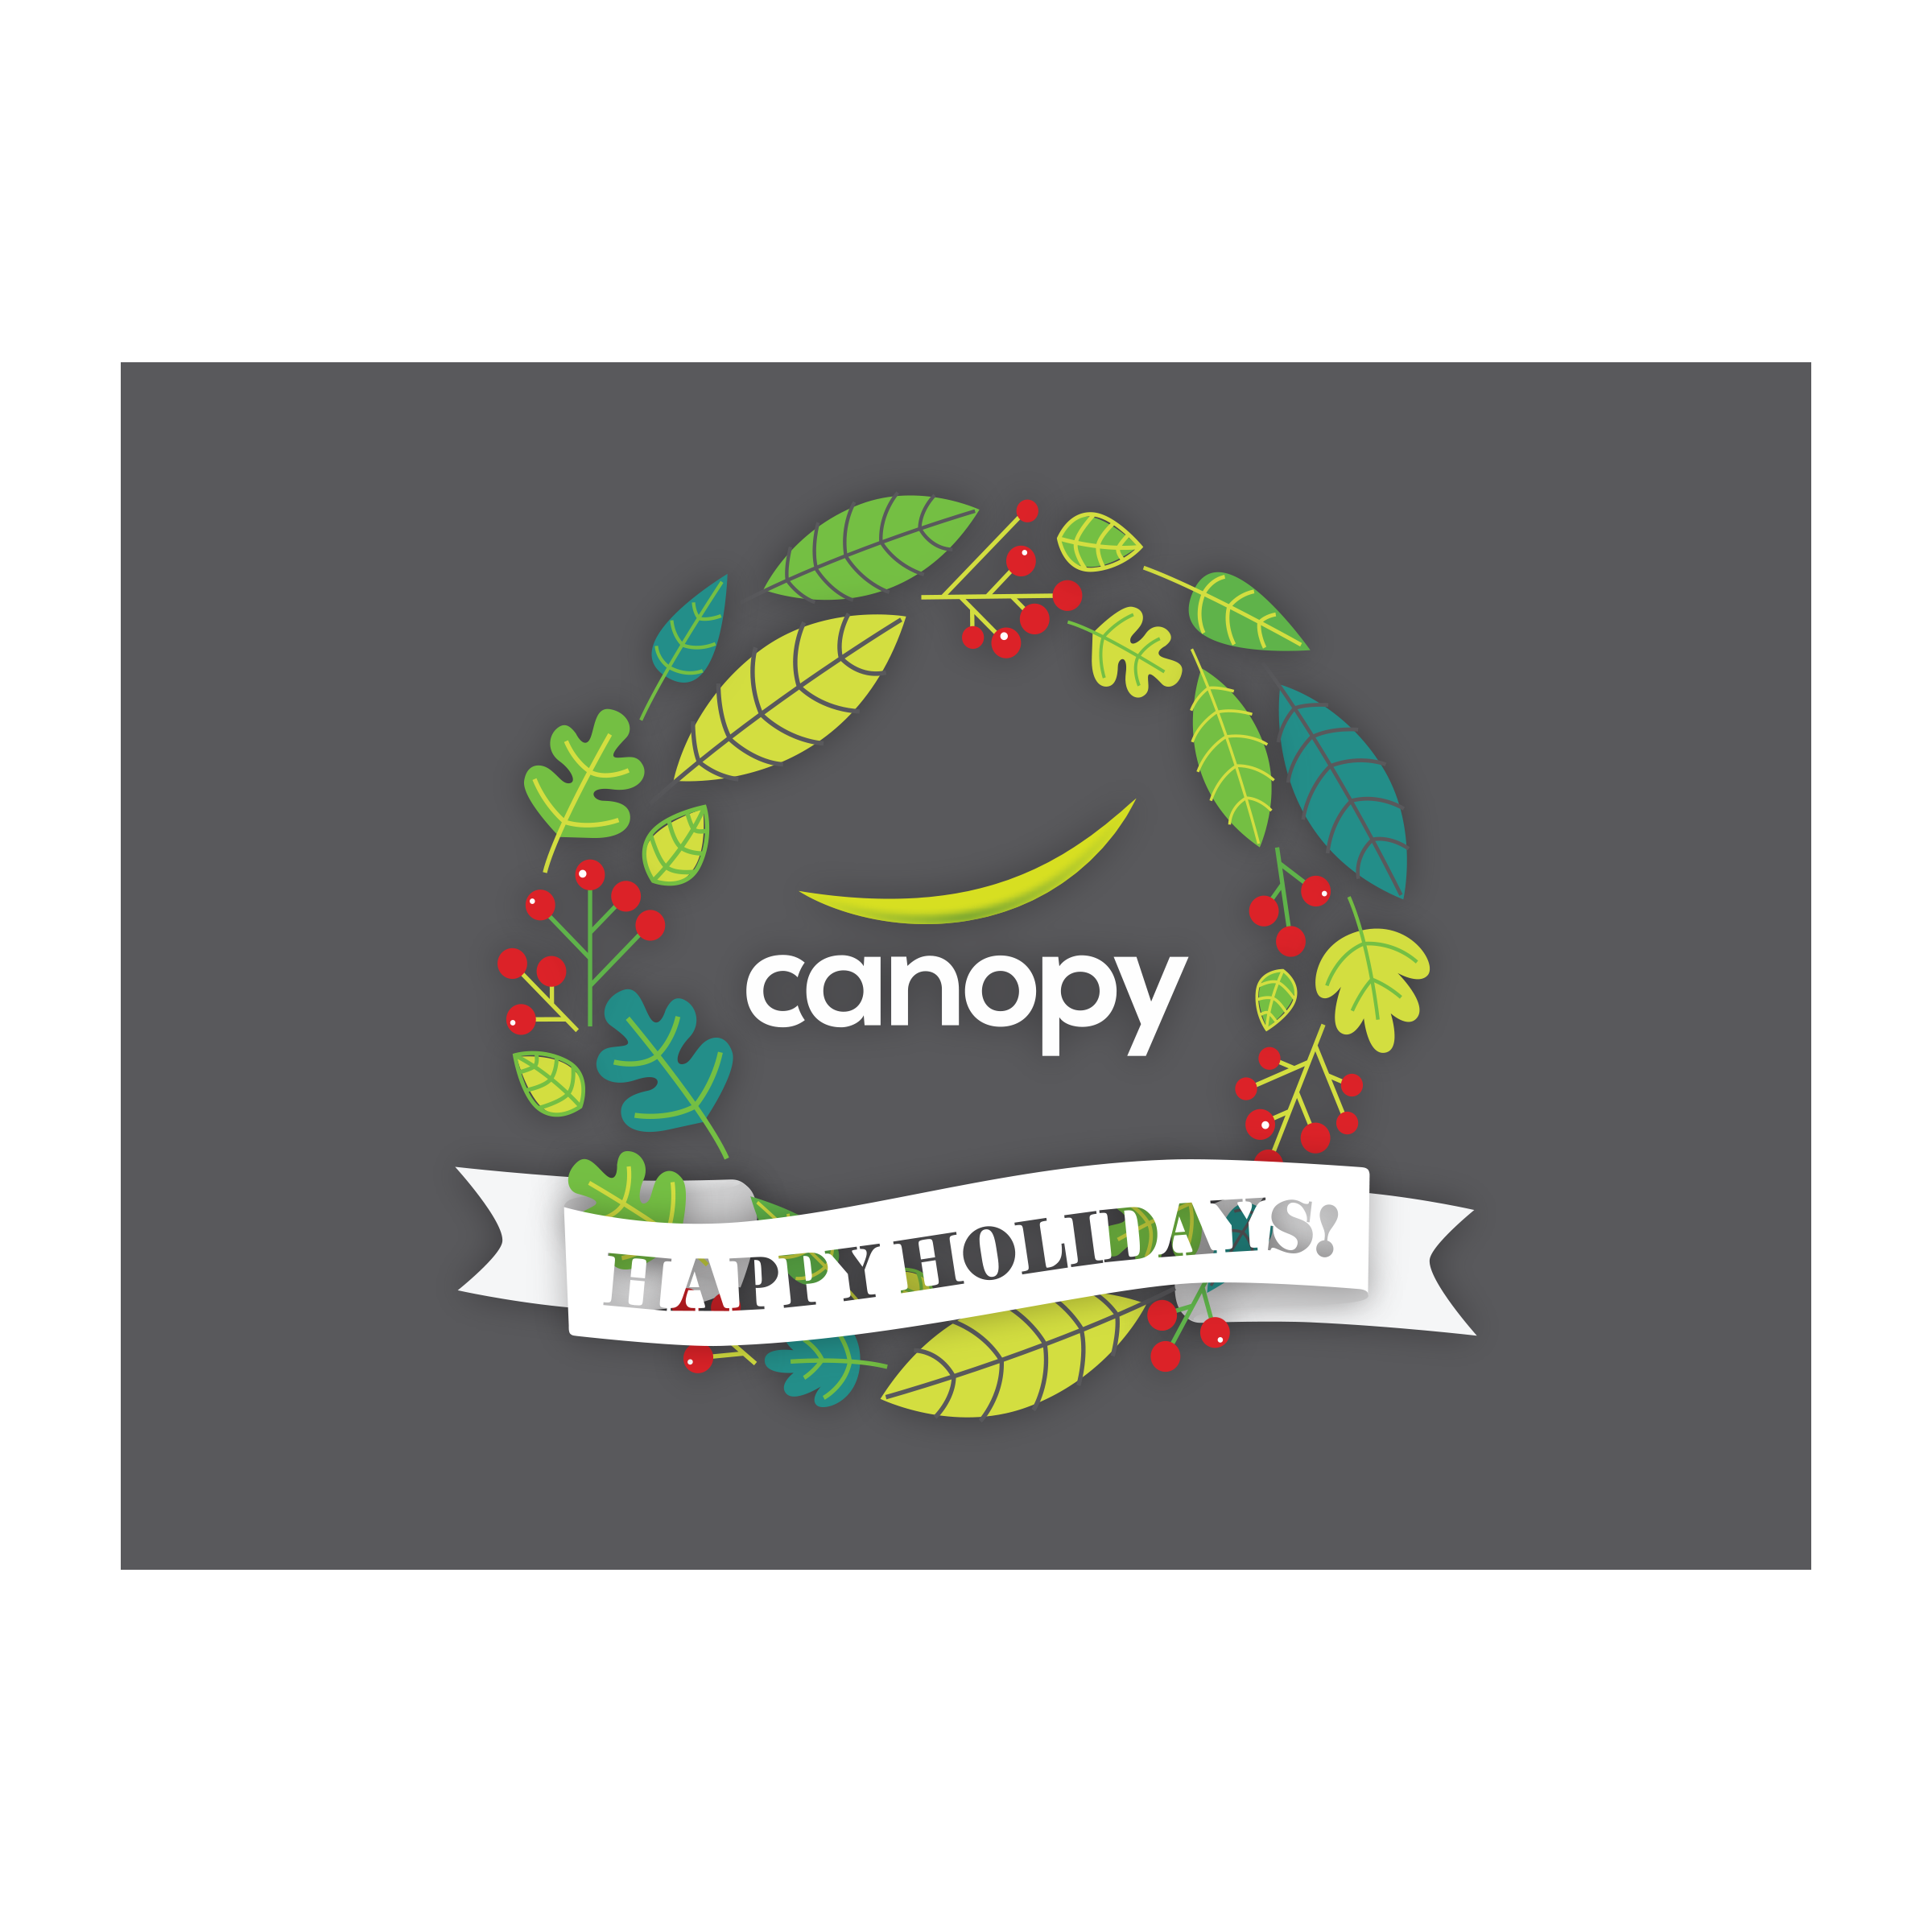 Canopy-HolidayCard-2016-new-nocrops-1.png